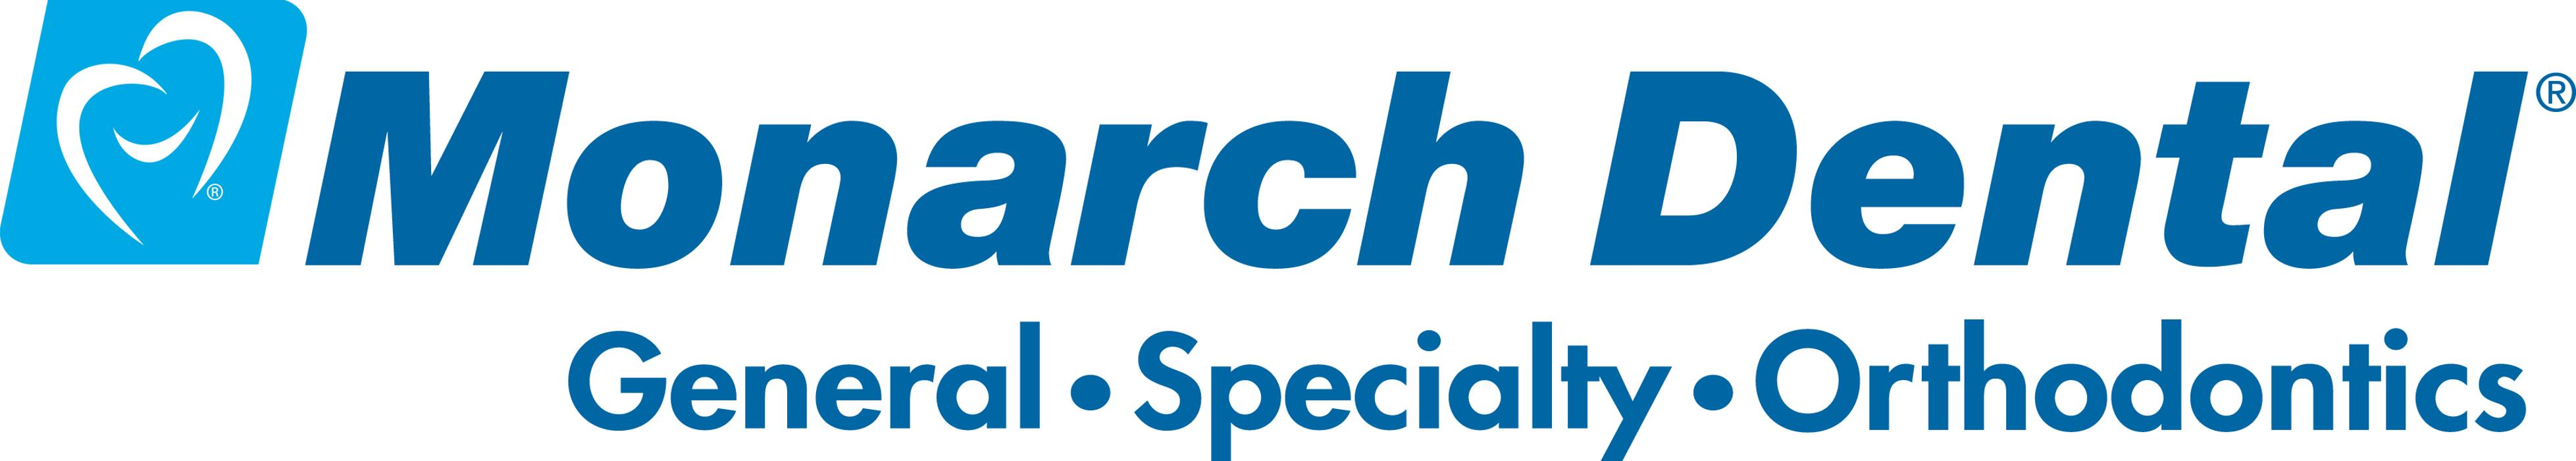 Monarch Dental - Granbury, TX